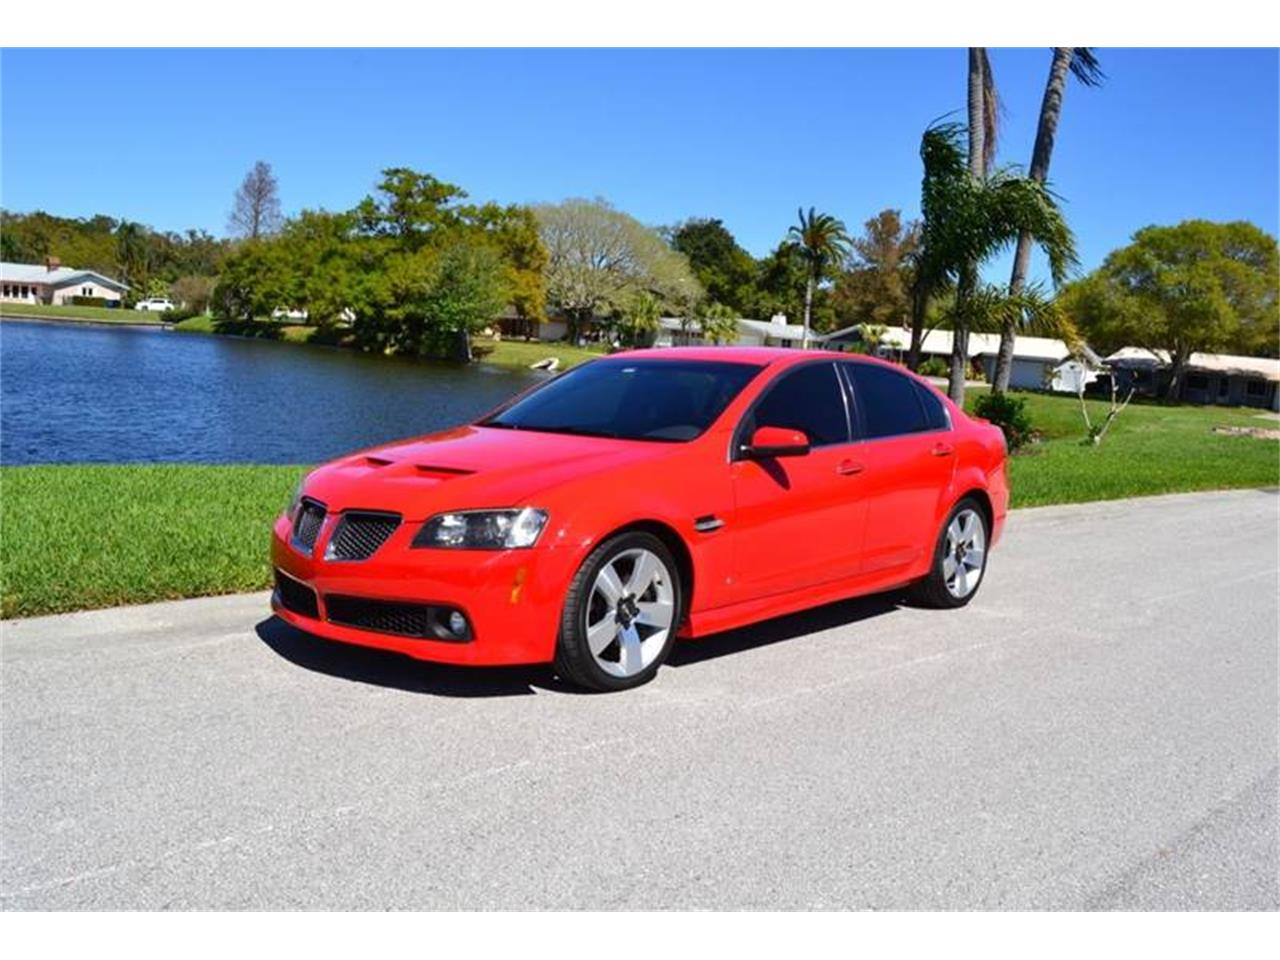 2009 Pontiac G8 for sale in Clearwater, FL